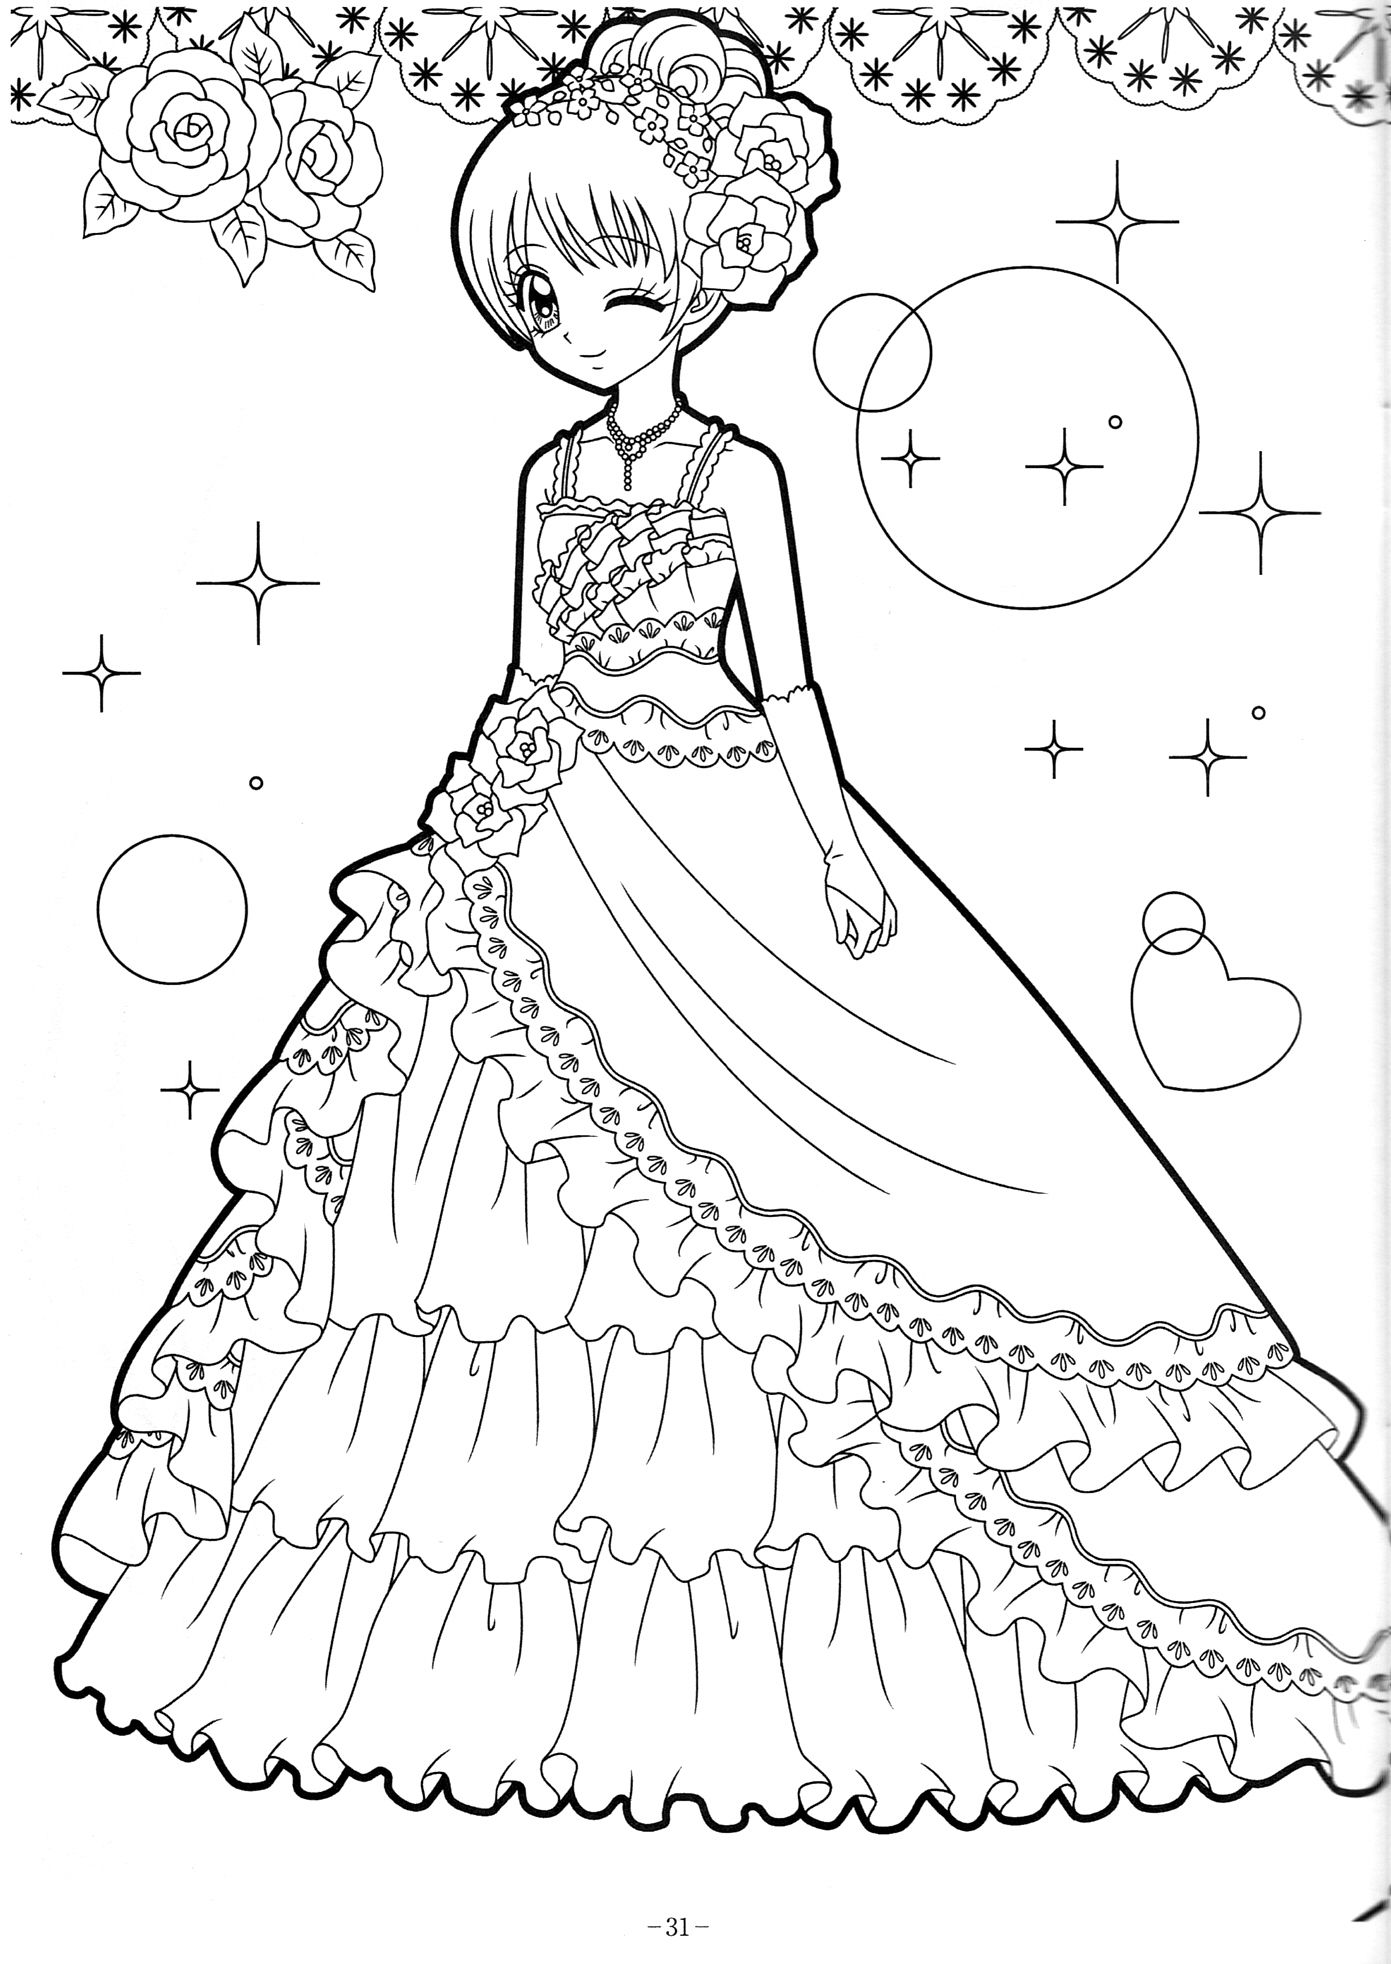 Coloring book pages pinterest - Coloring Pages On Pinterest Chibi Coloring And Coloring Books